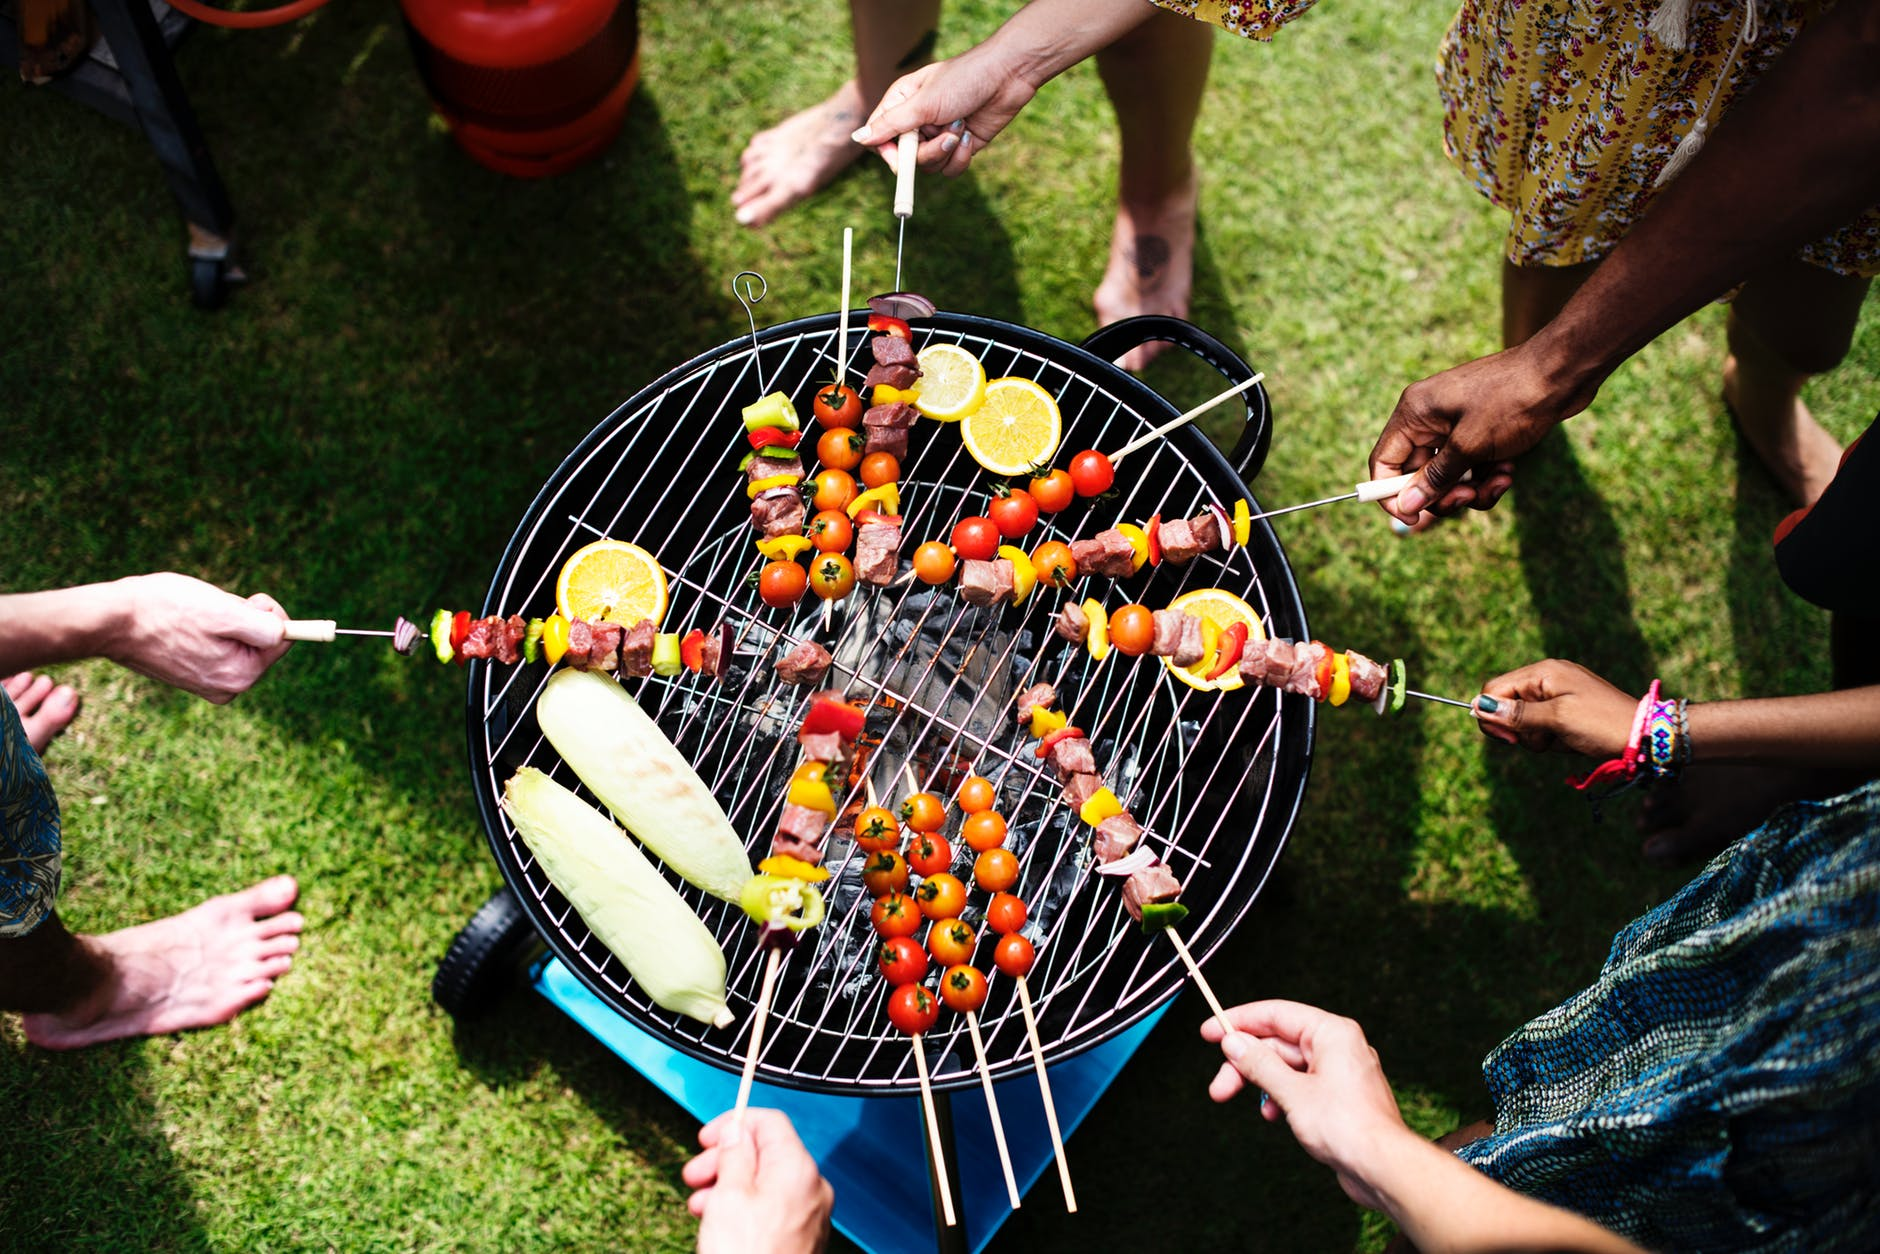 people cooking skewers over a grill at a cookout